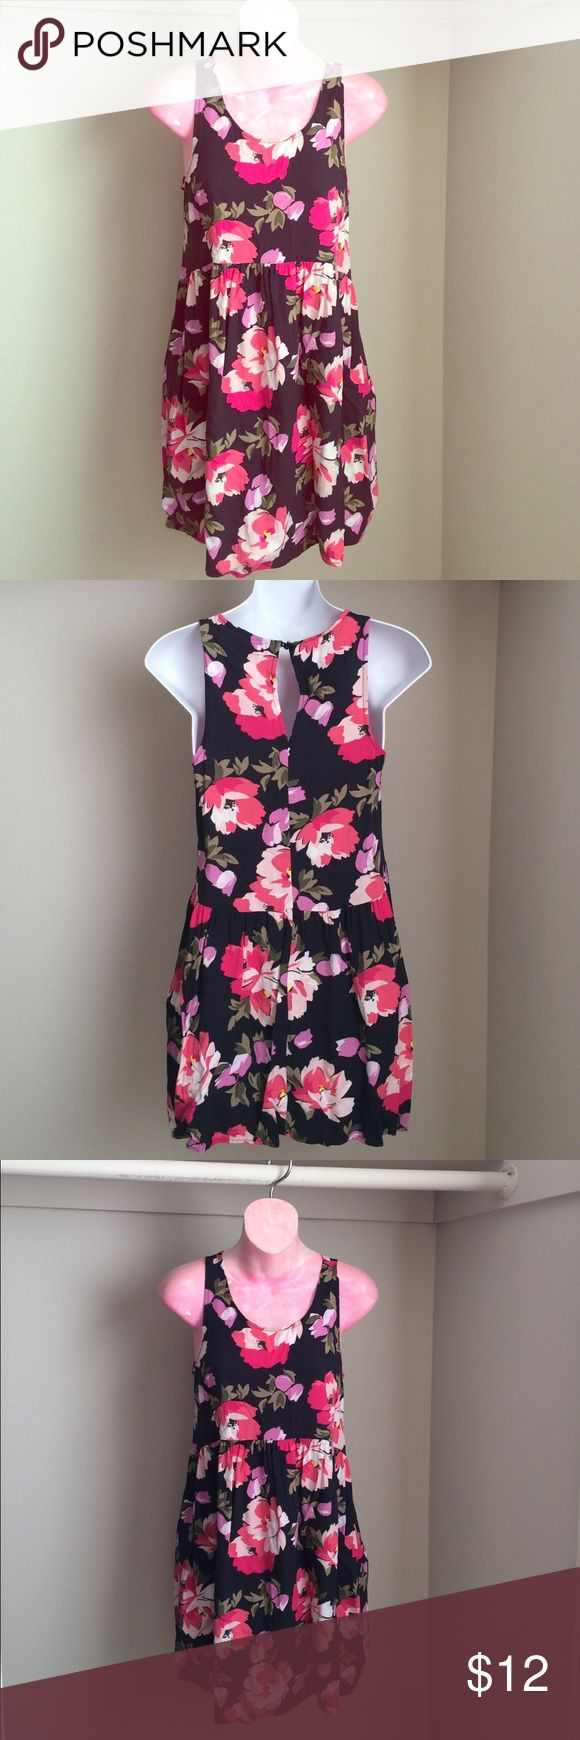 Adorable floral dress from old navy! Adorable floral dress from old navy! Zipper on the side. Old Navy Dresses